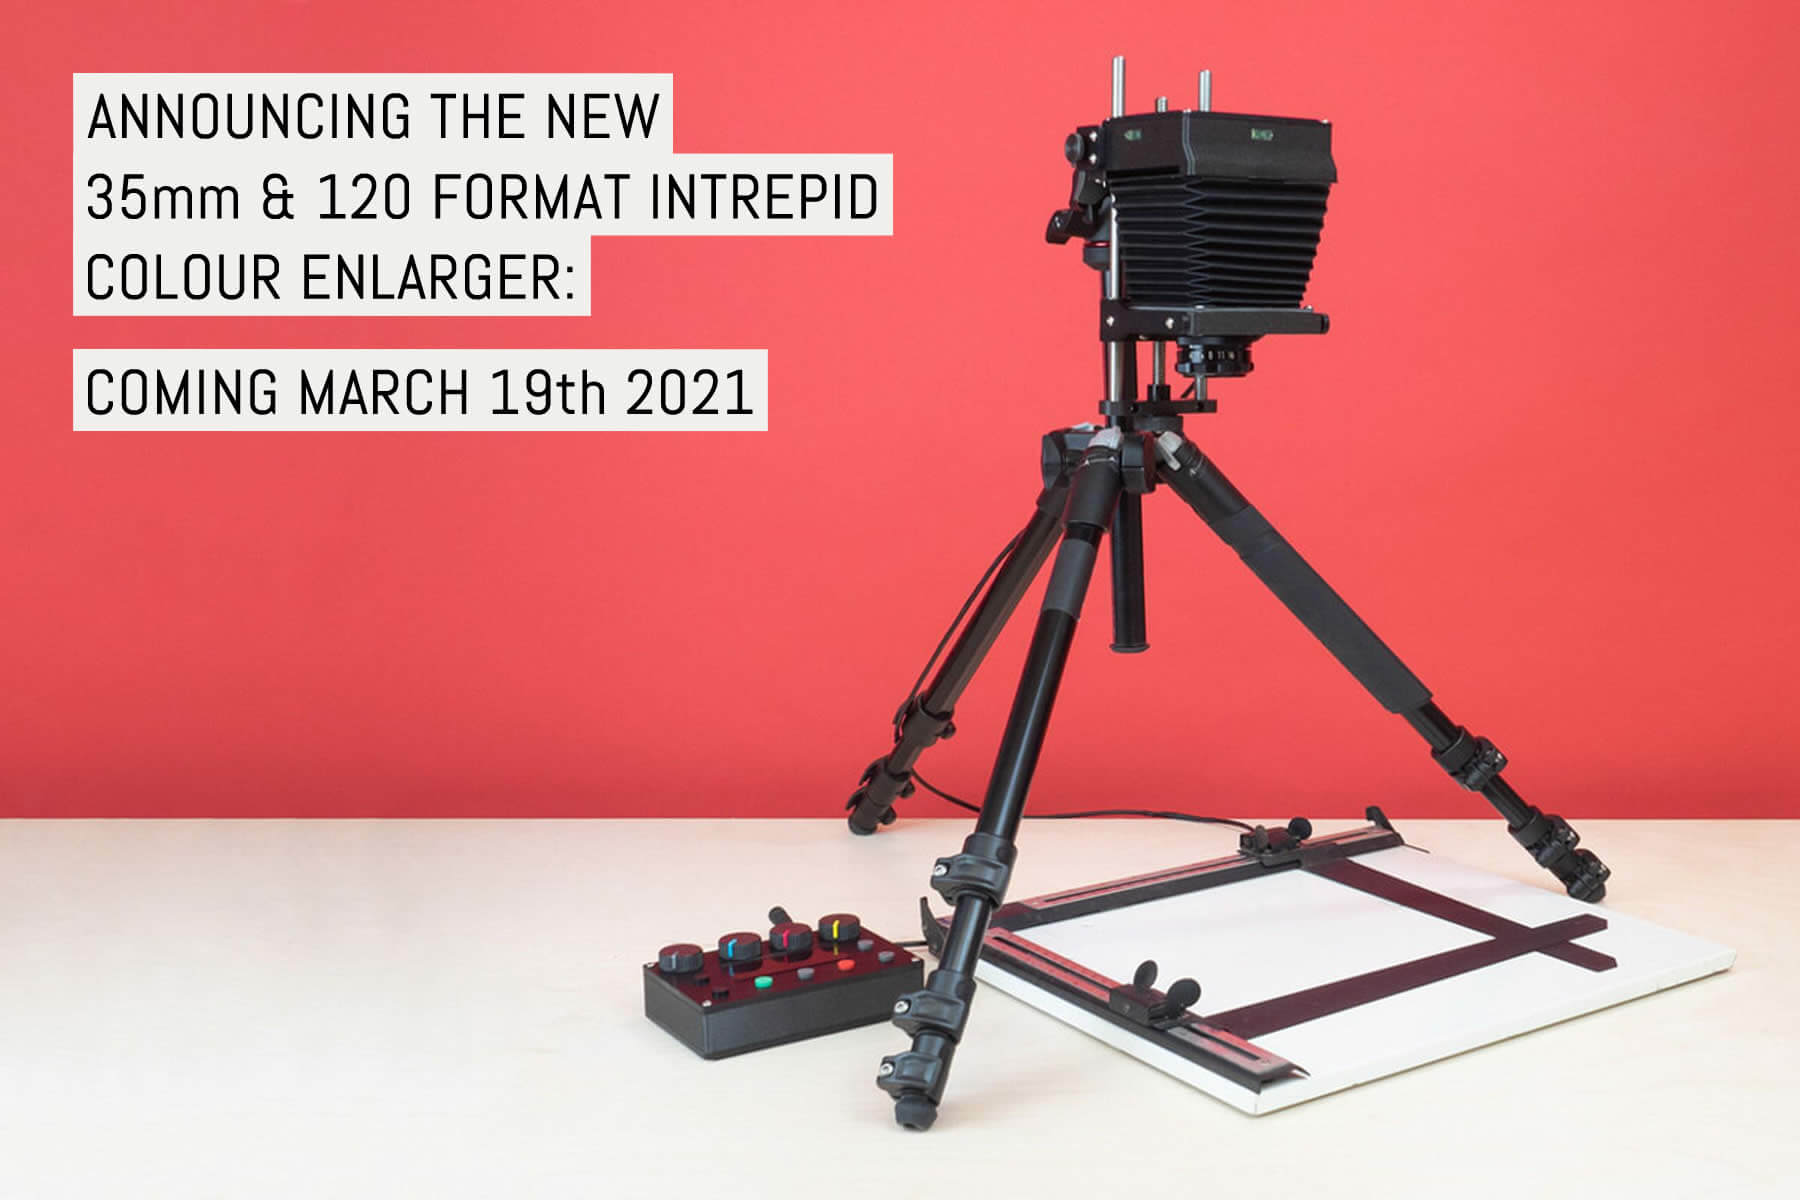 Announcing the new 35mm and 120 format Intrepid Colour Enlarger - Coming March 19th 2021